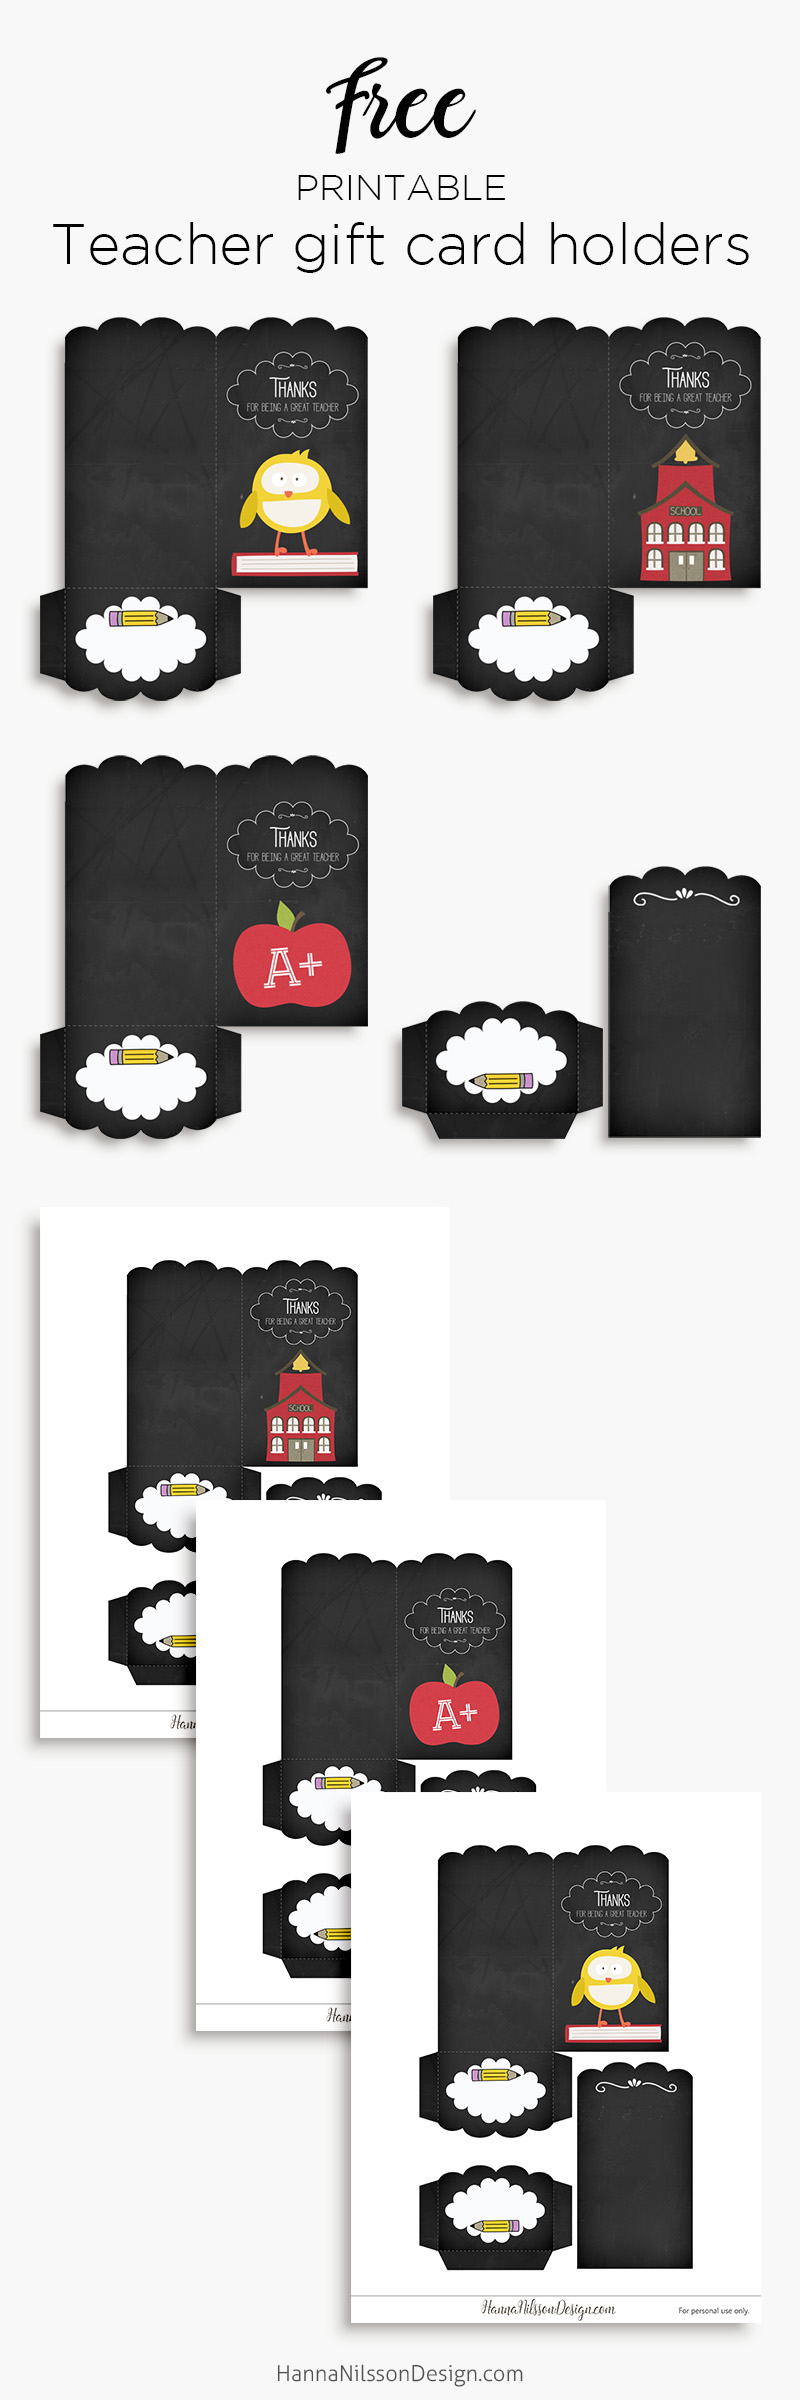 Back to school | printable gift card holders for teachers | free download |